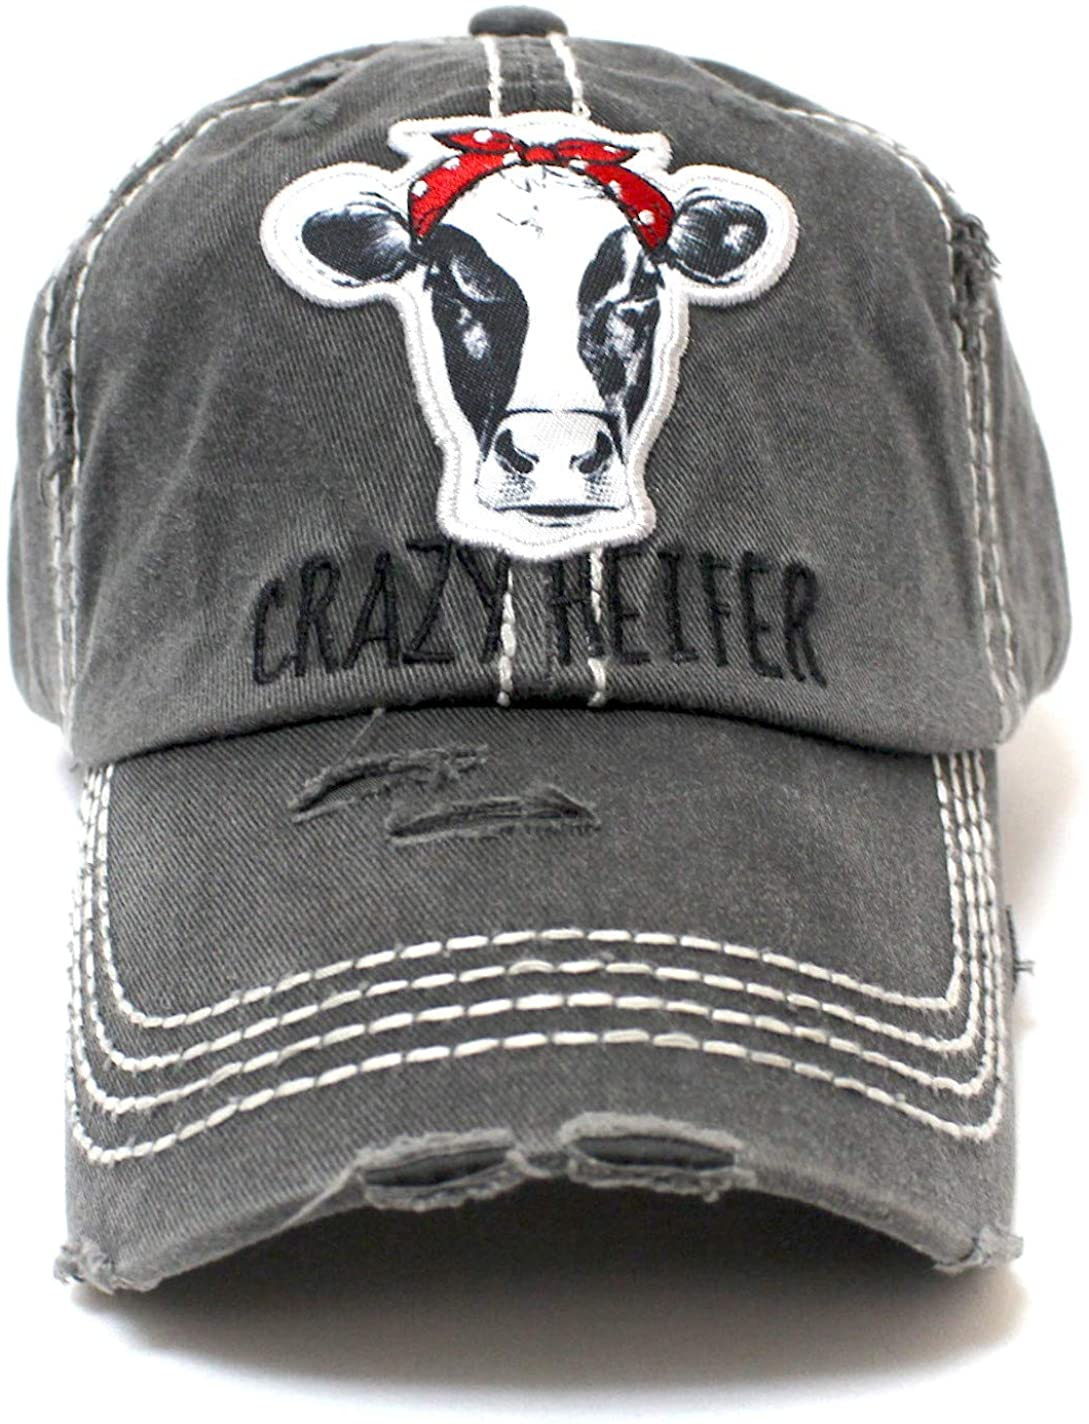 CAPS 'N VINTAGE Women's Baseball Cap Crazy Heifer Cow Patch Embroidery Hat Charcoal Gray